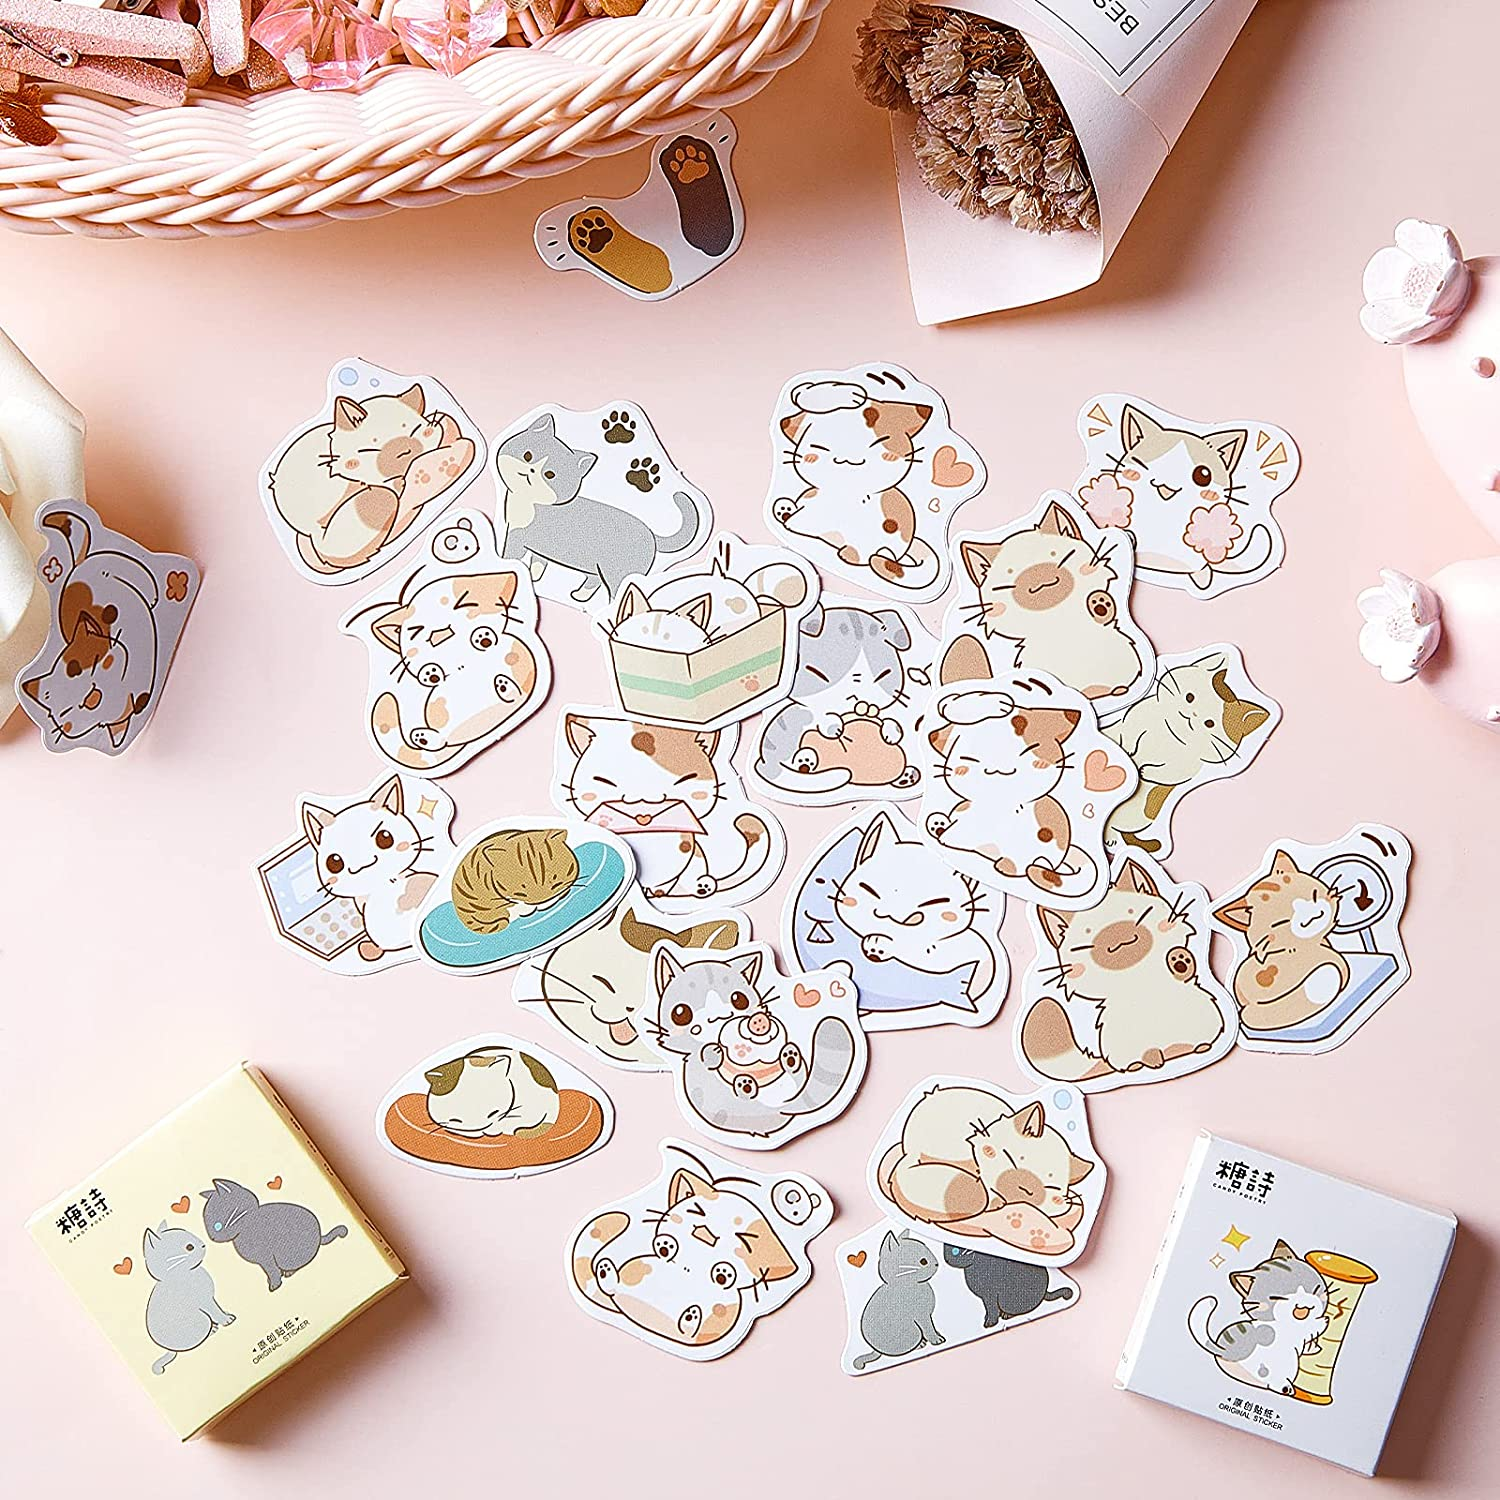 2 Boxes/ 90 Pieces Small Size Cat Theme Stickers Decoration Cute Cats Stickers Self-Adhesive Scrapbooking Stickers for Laptop Planners Scrapbook Suitcase Diary Notebooks Album, 45 Pieces/ Box